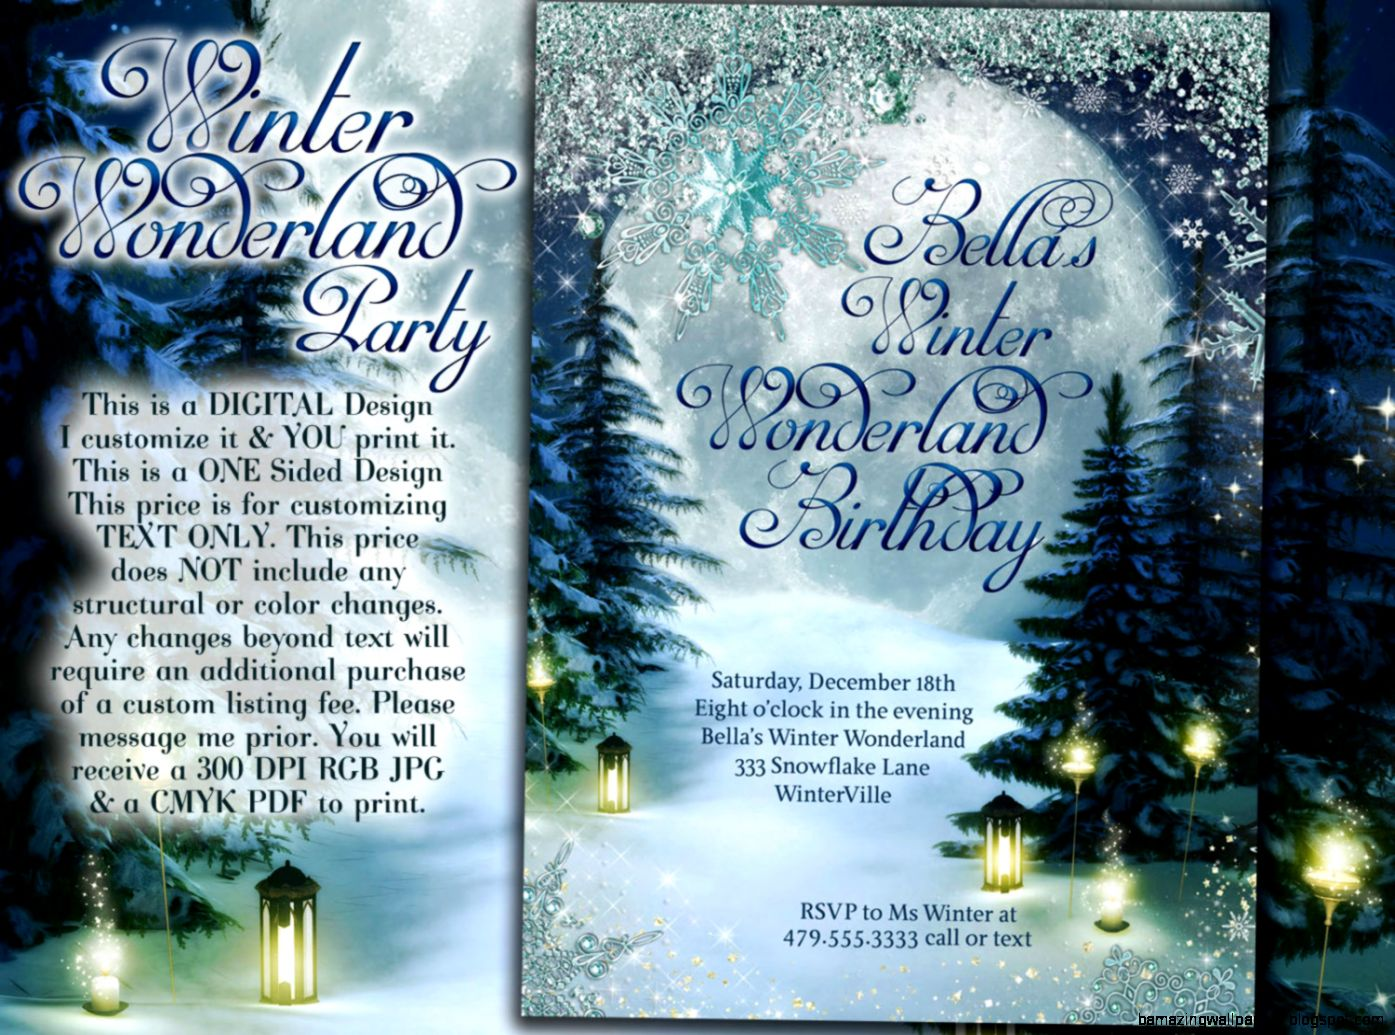 Unique holiday party invite related items  Etsy